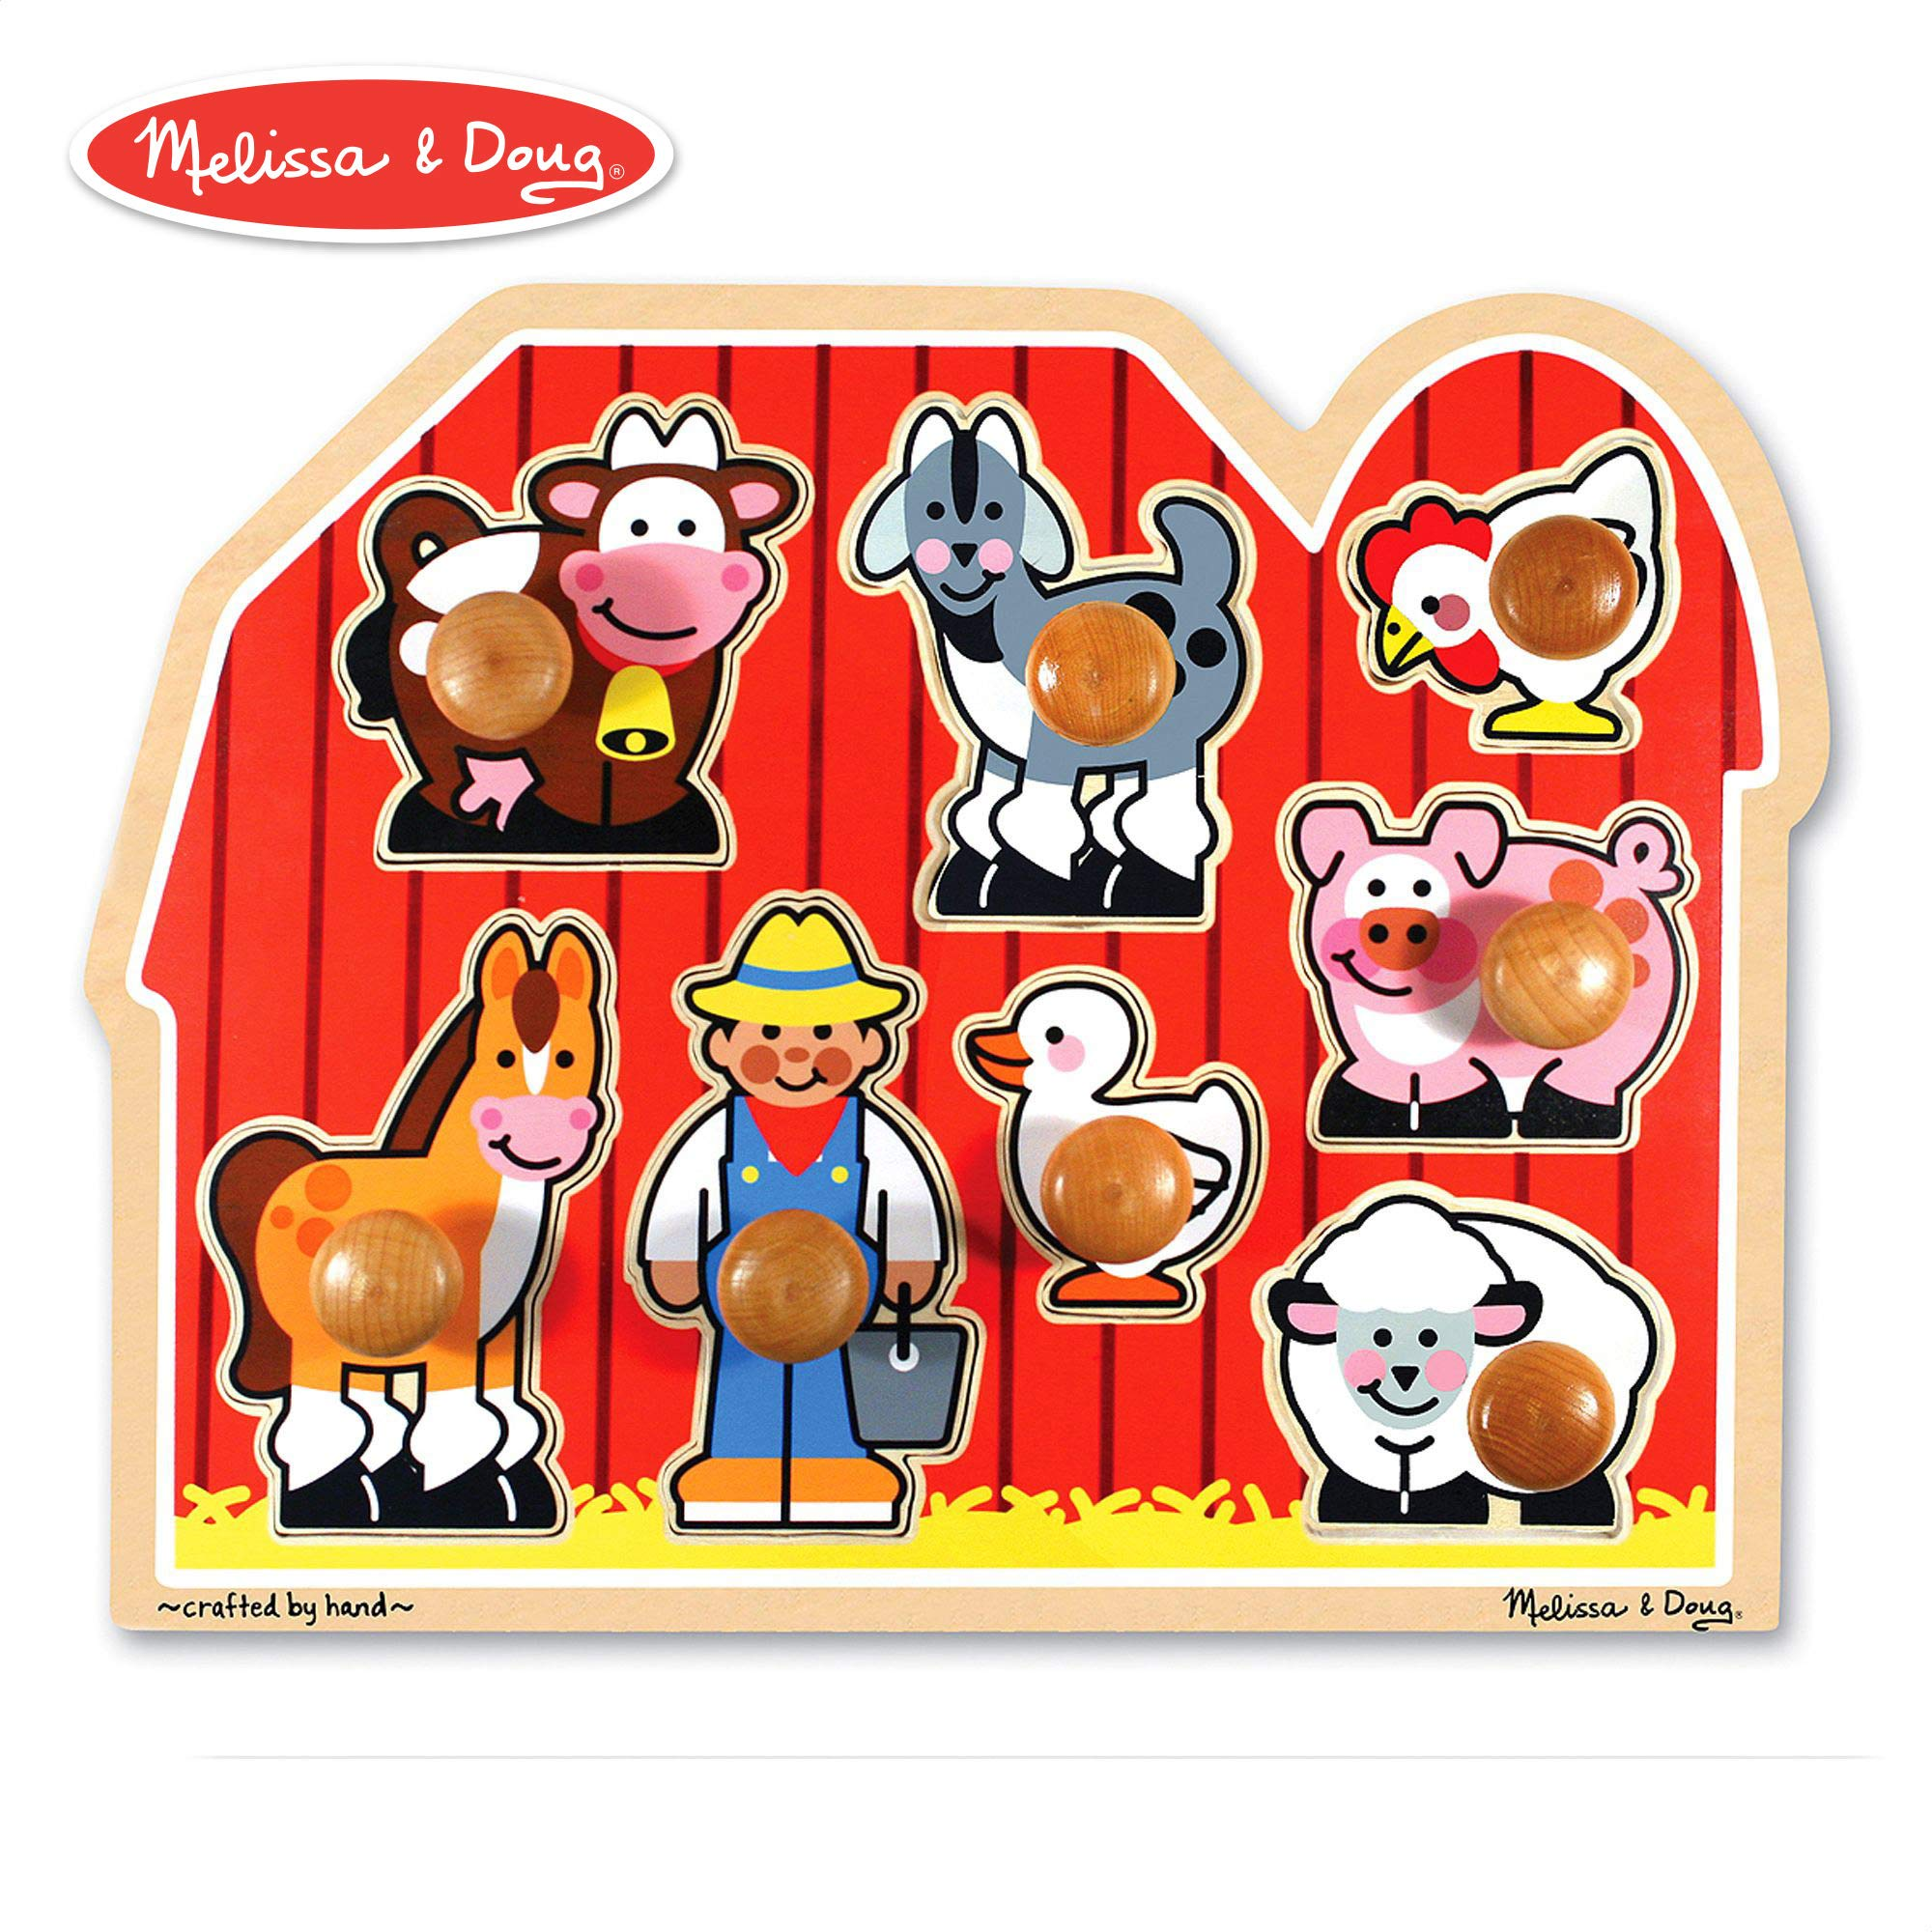 Melissa & Doug Large Farm Jumbo Knob Puzzle, Colorful Farm Artwork, Extra-Thick Wooden Construction, 8 Pieces, 1.5'' H x 12'' W x 15.5'' L by Melissa & Doug